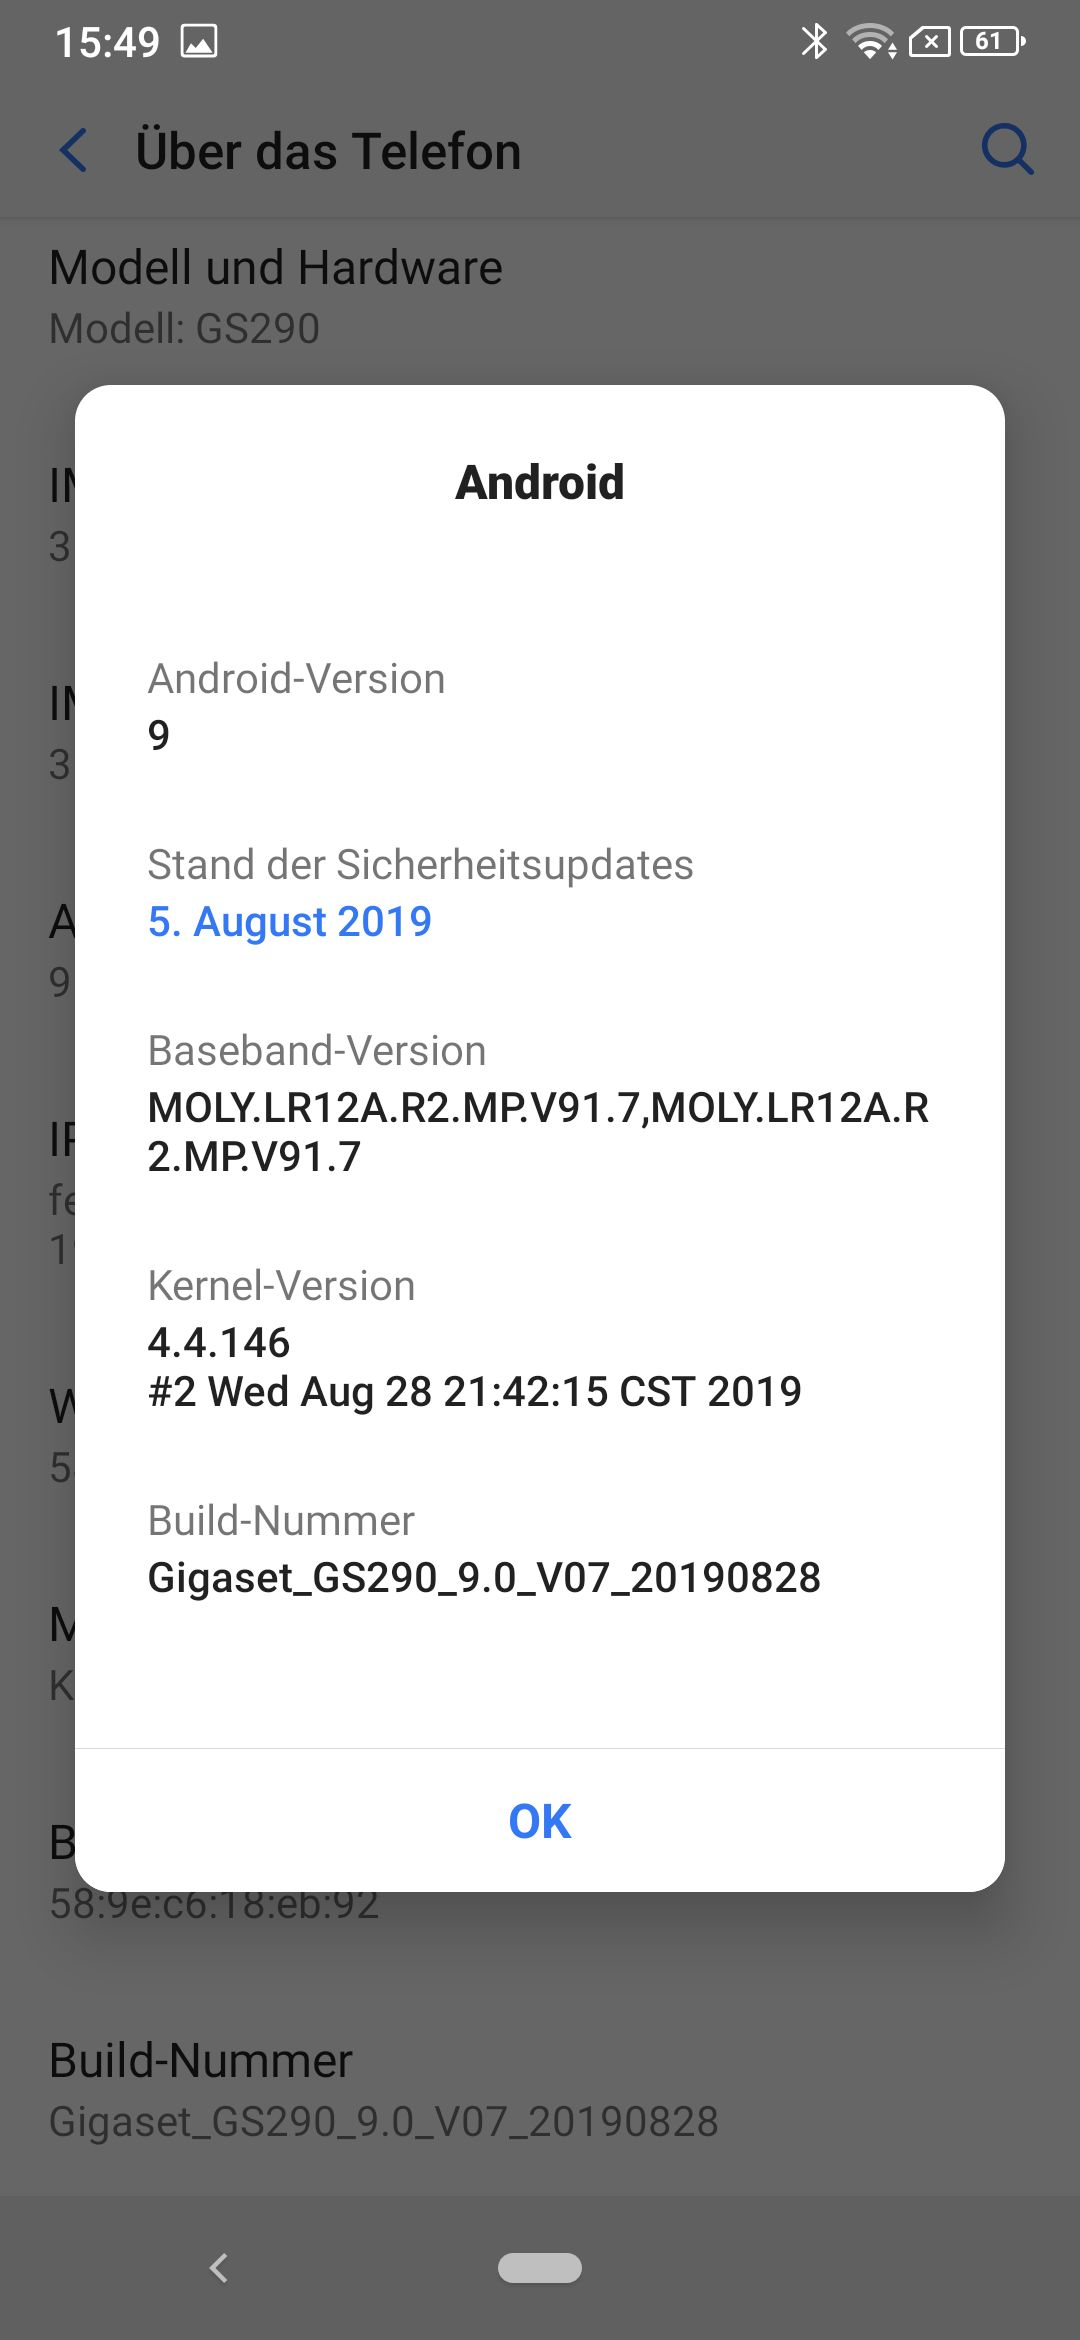 Gigaset Gs290 Androidversion